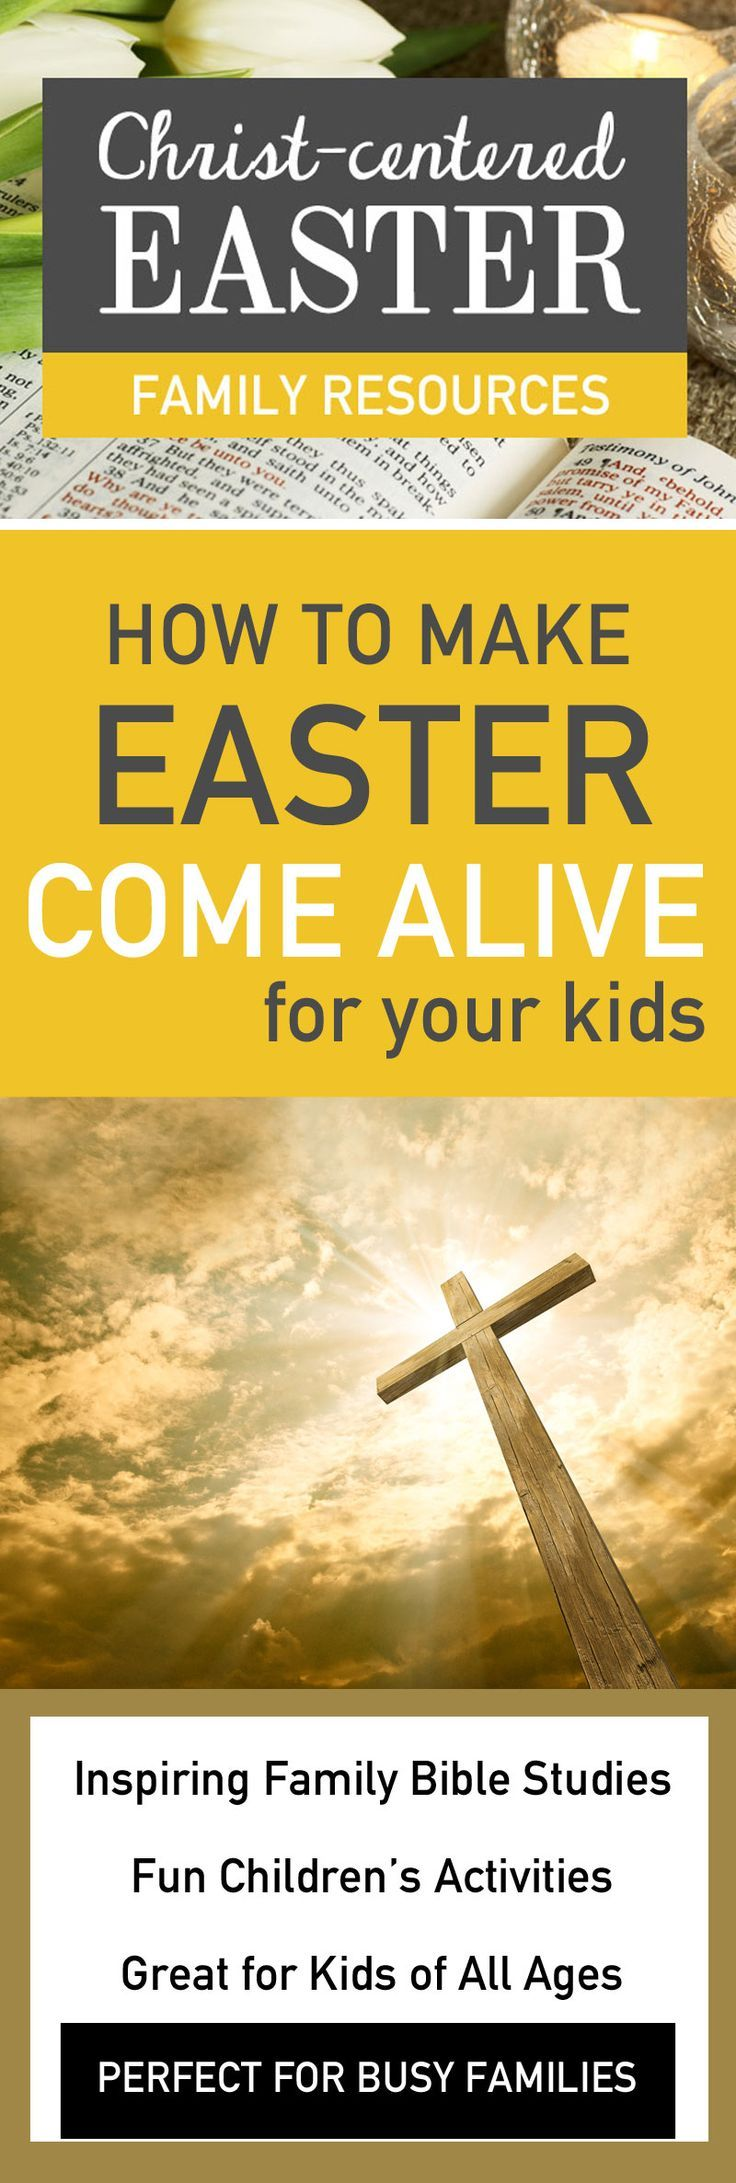 YES! I love that there is NO Easter Bunny here! I mean, he's cute, but isn't Easter about Jesus? That's what I want my kids to know about...